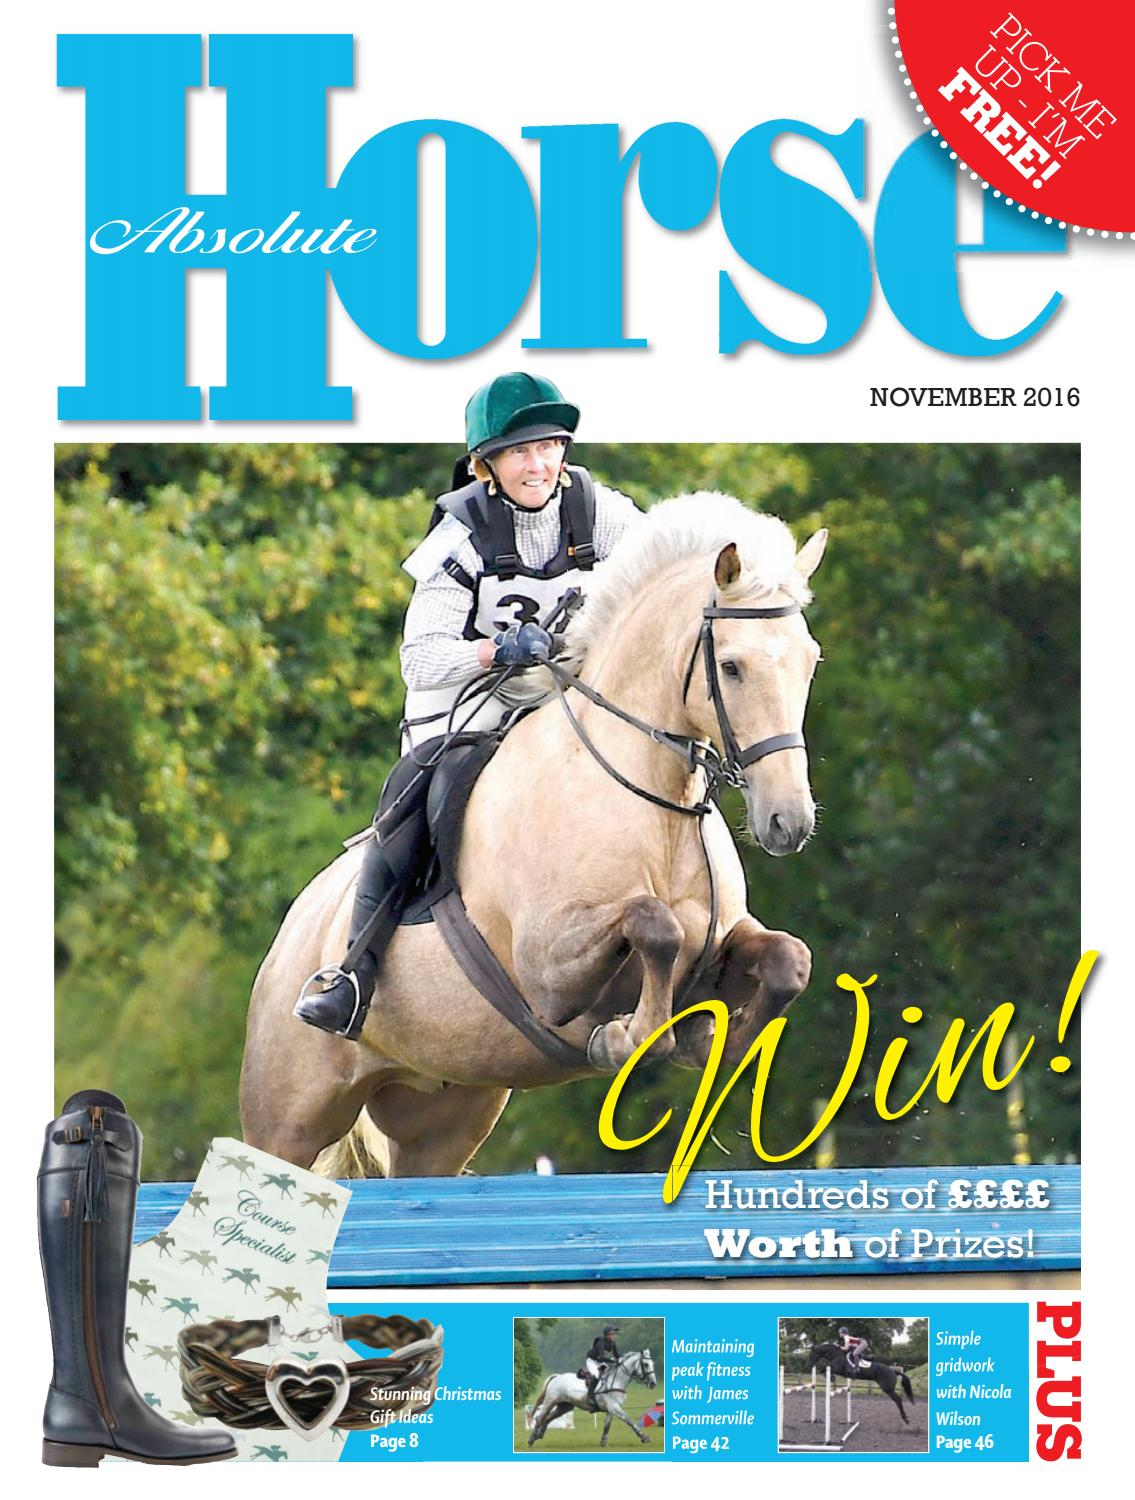 Absolute Horse November 2016 By Absolute Horse Magazine